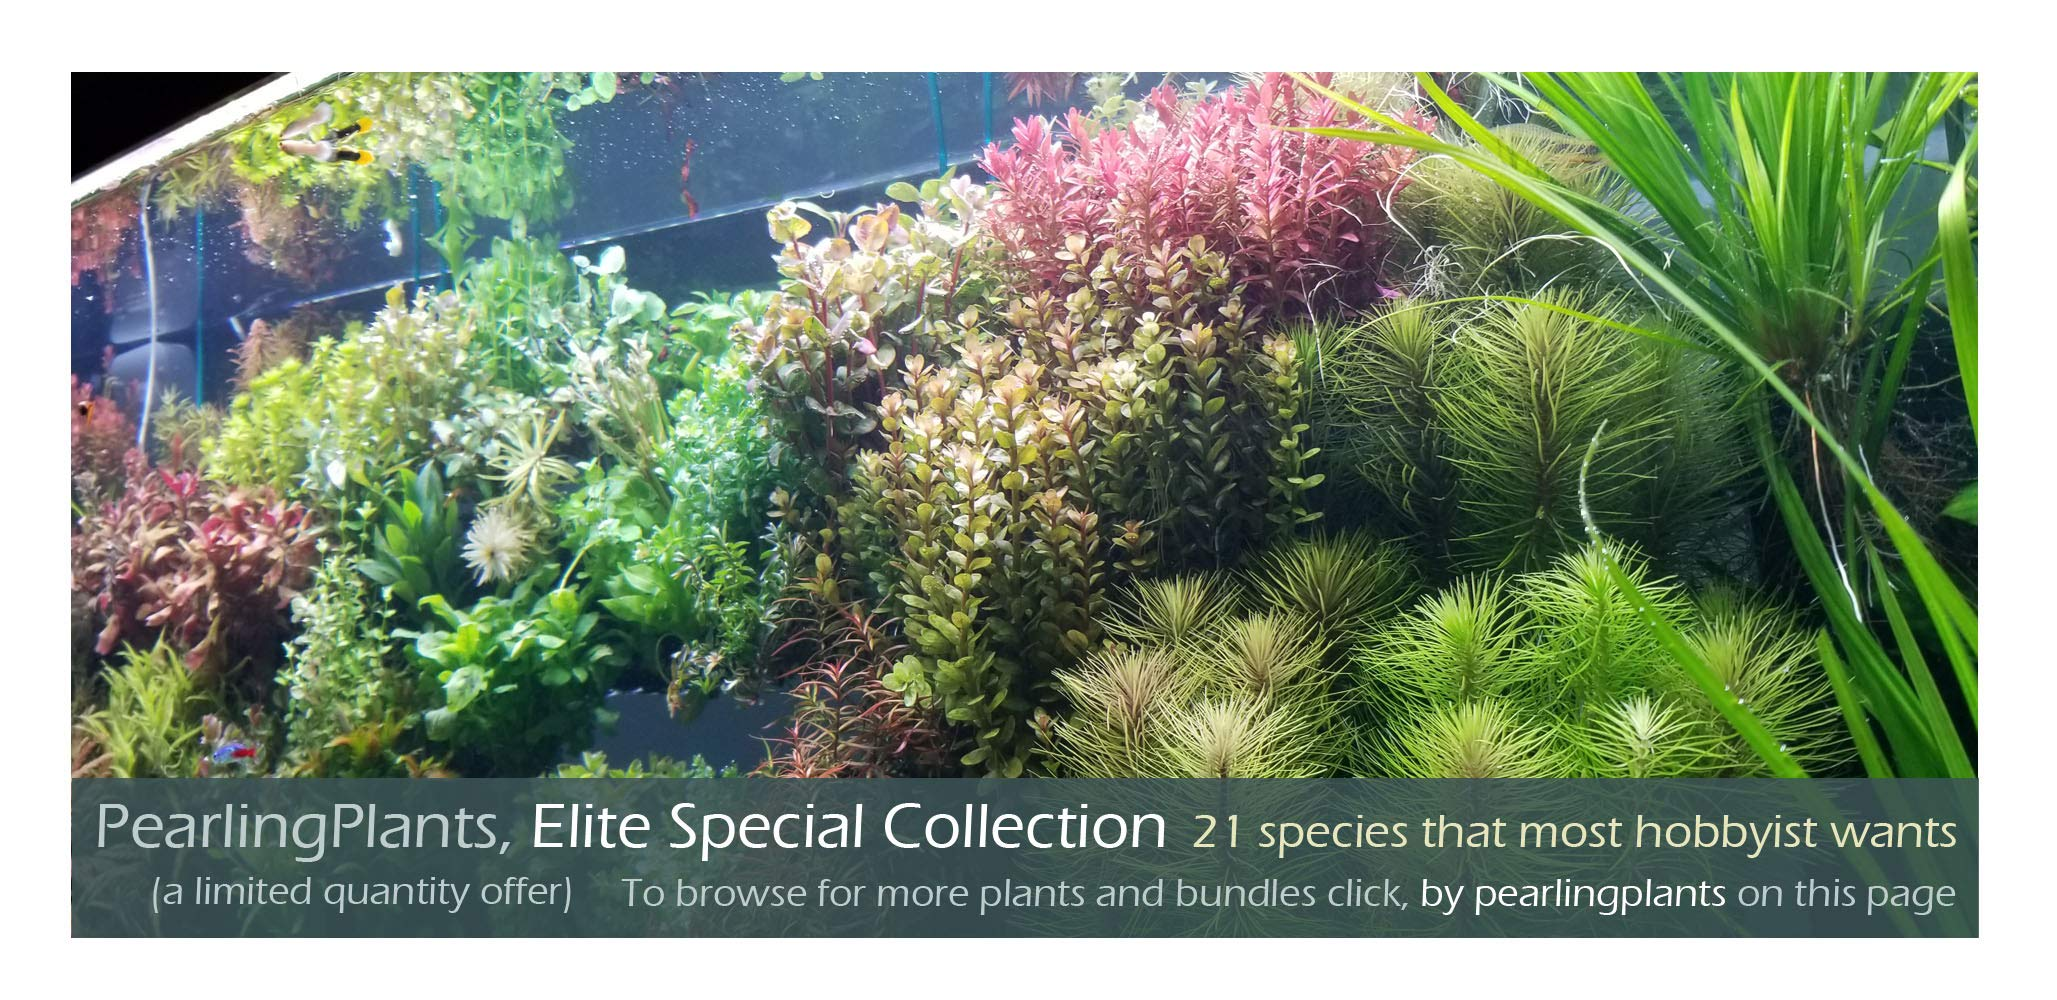 Elite Special Collection, Freshwater Live Aquarium Plants by PearlingPlants